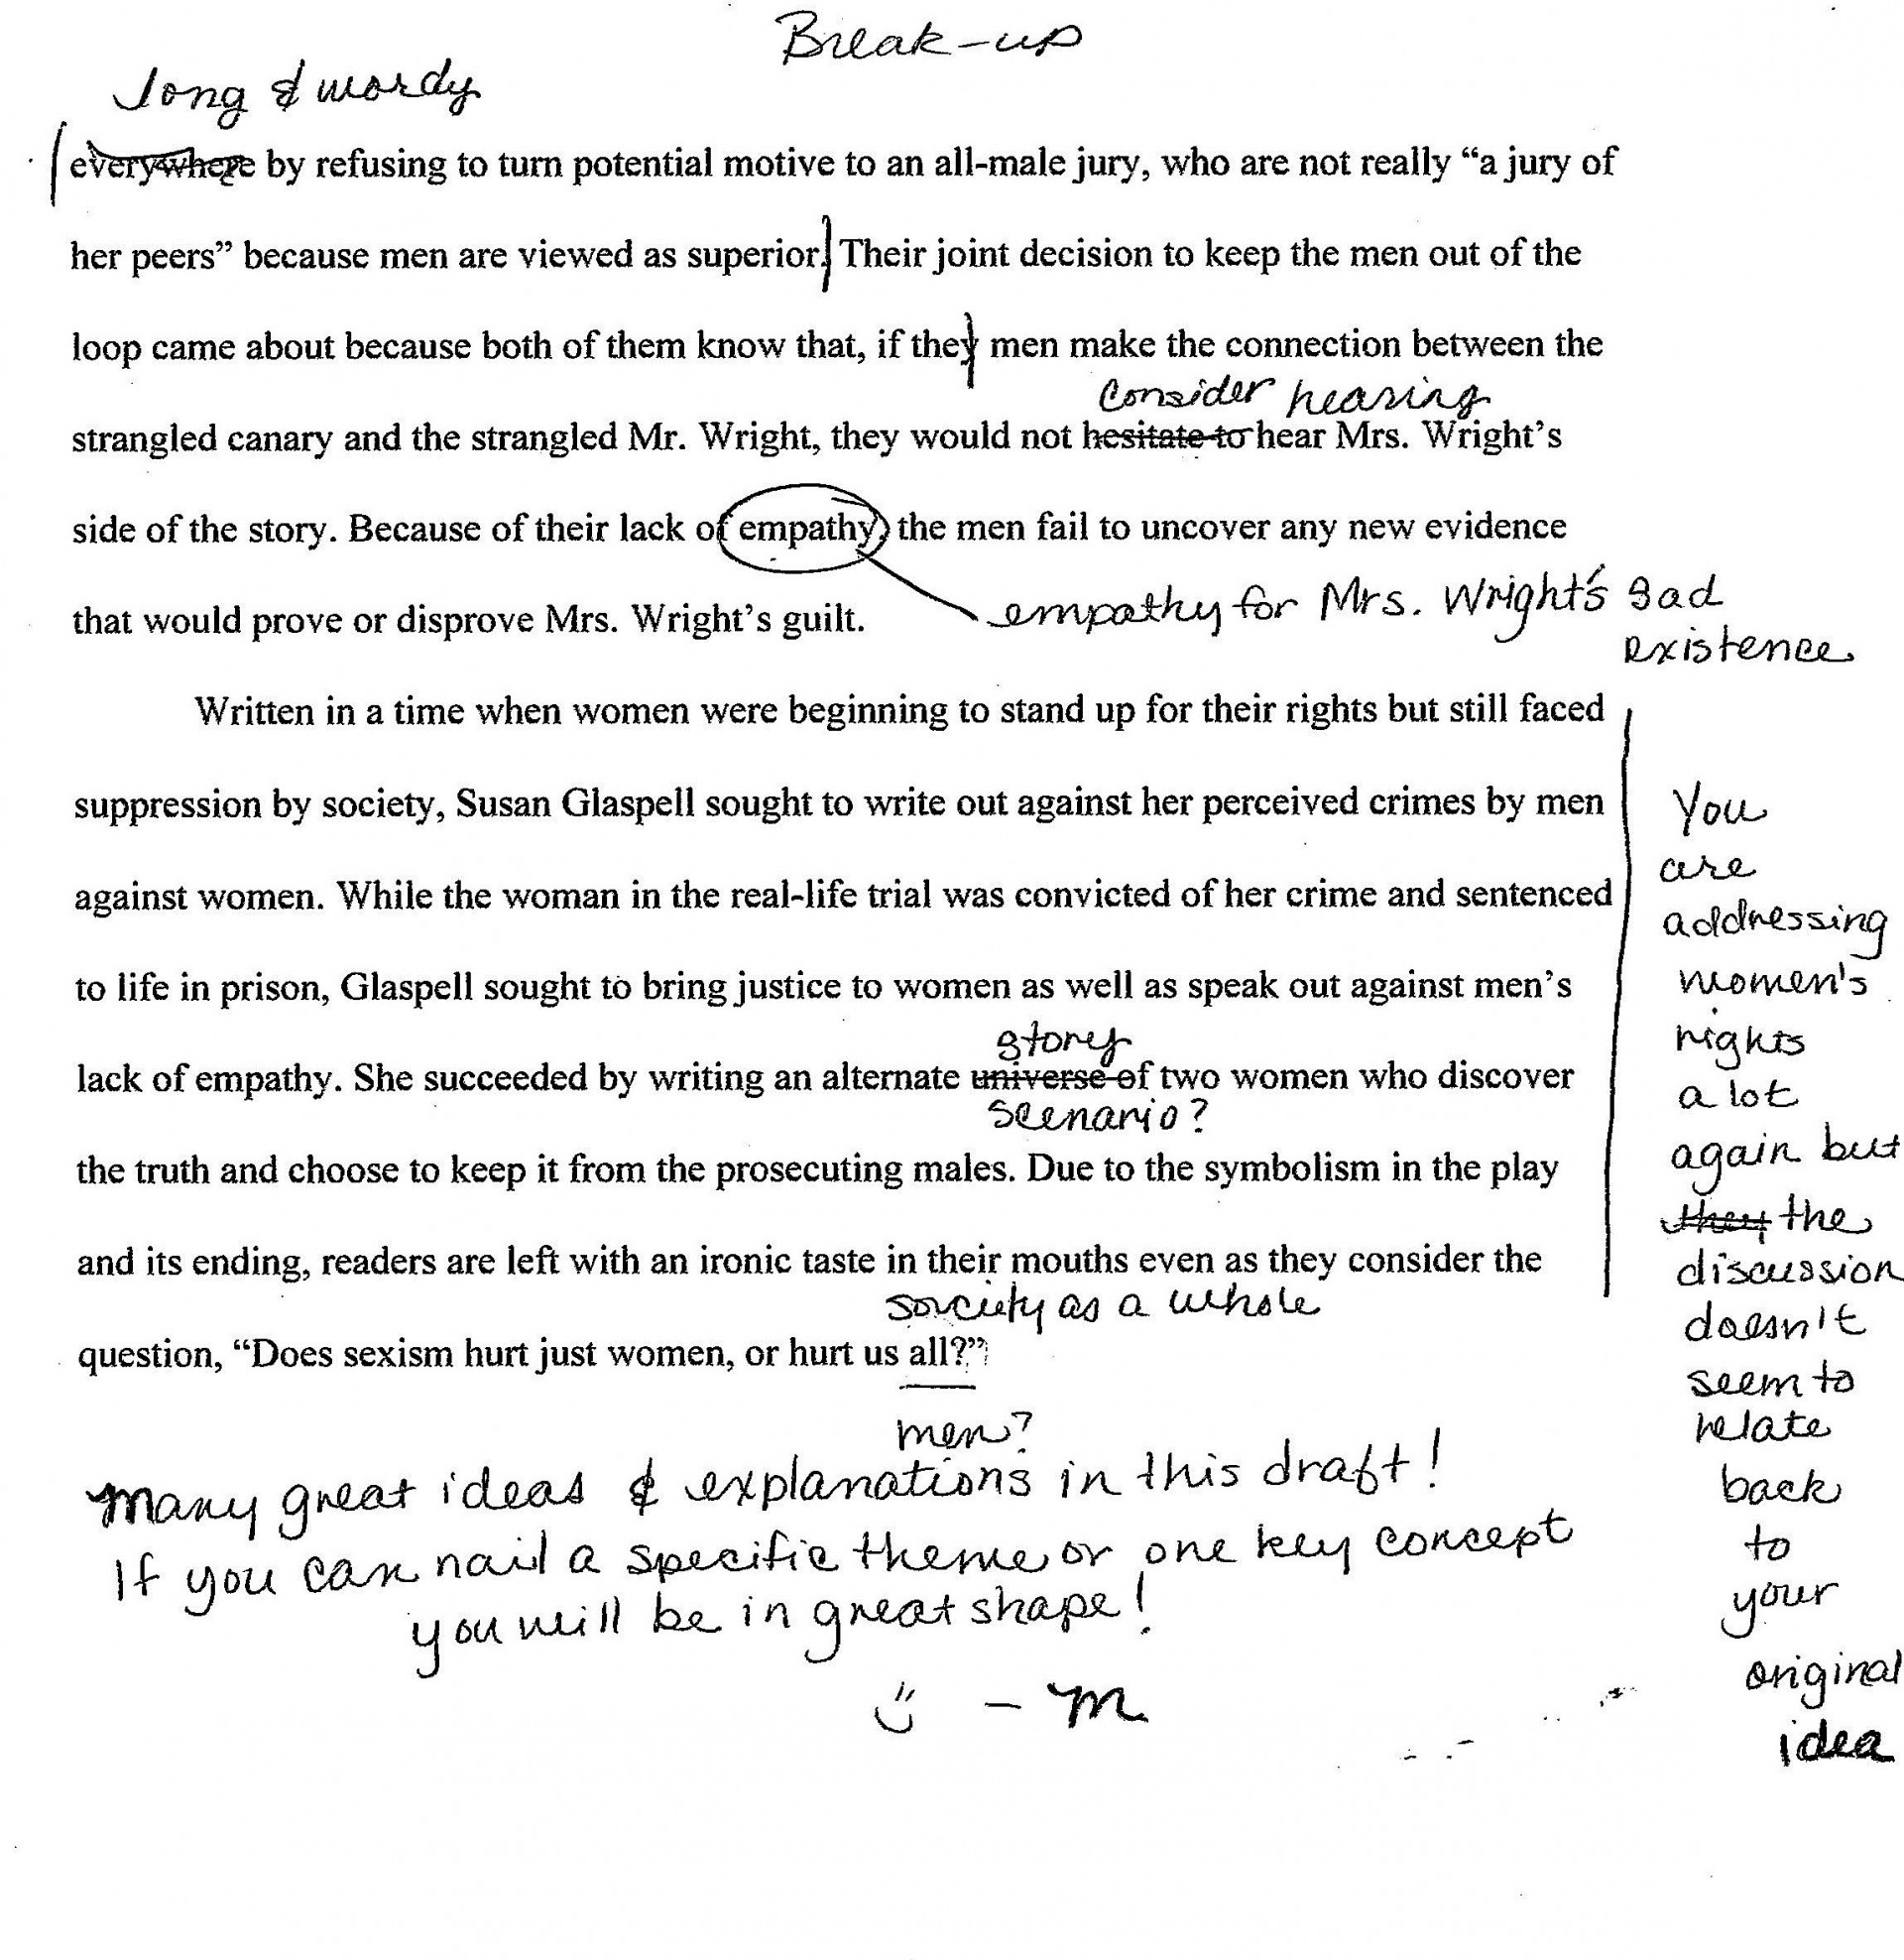 008 Essay Example Img032 College Editing Unusual Service Application Services Free 1920